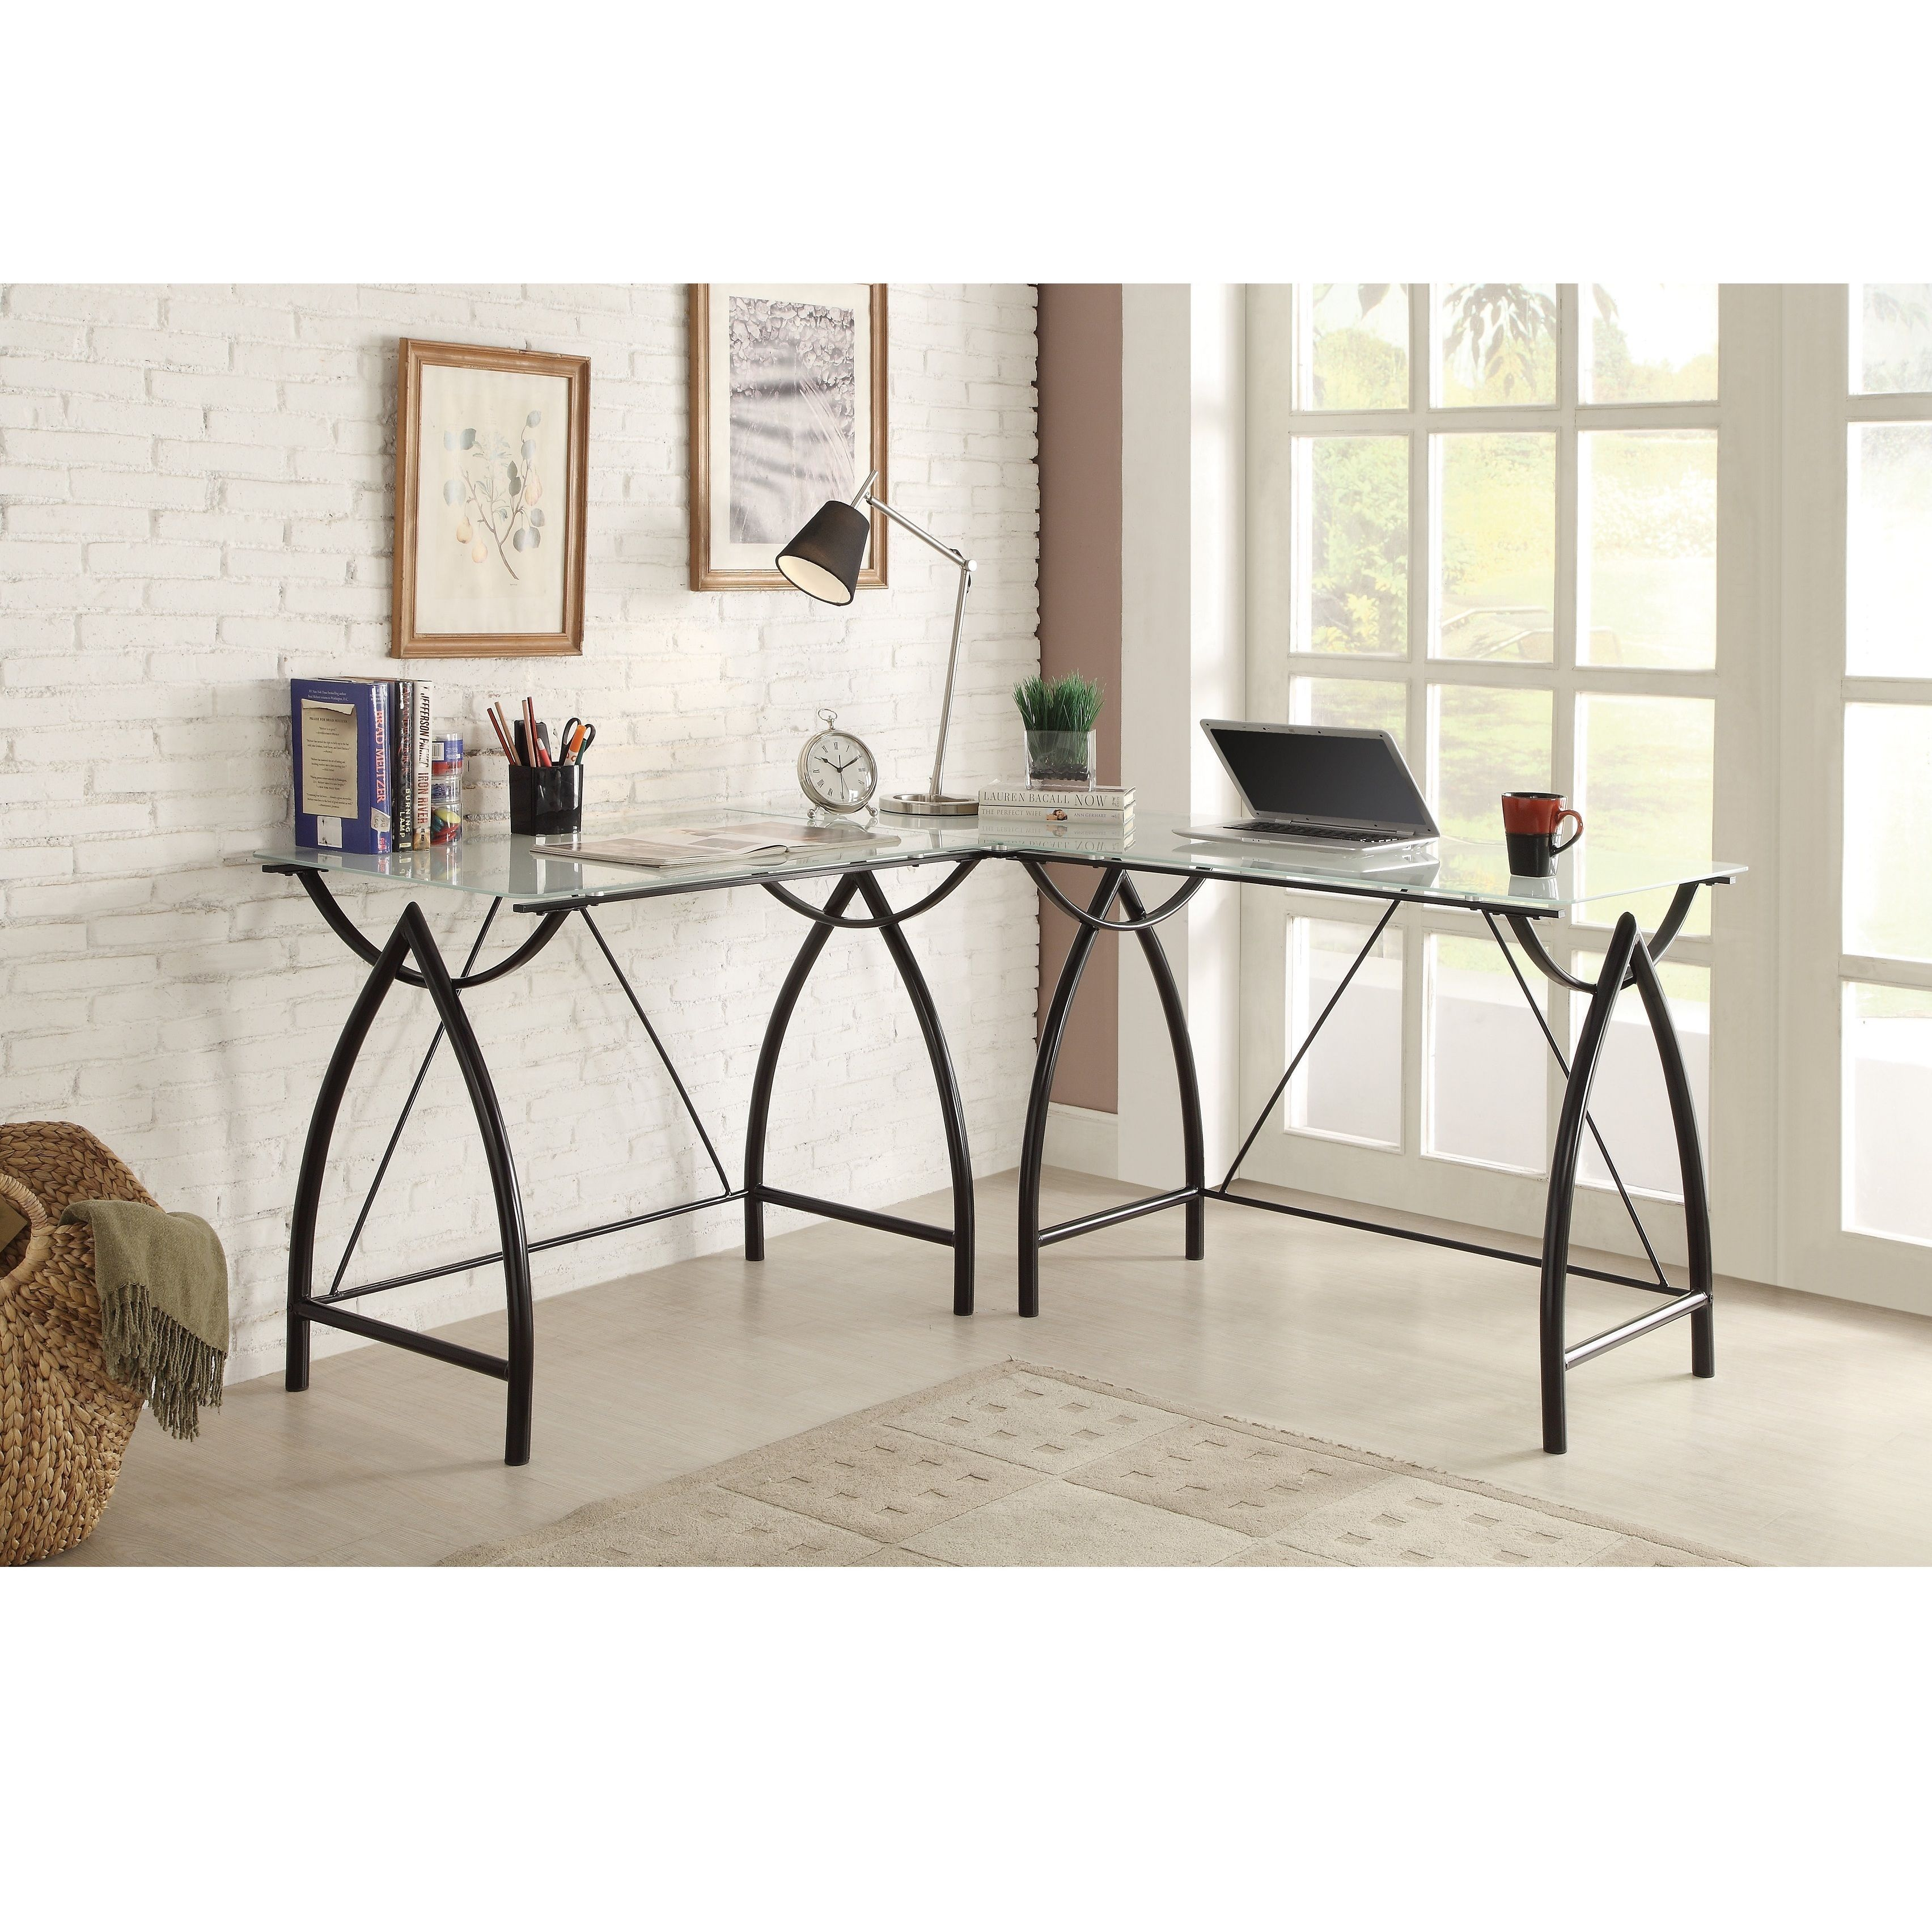 Designed with a practical yet edgy style this lshaped desk will